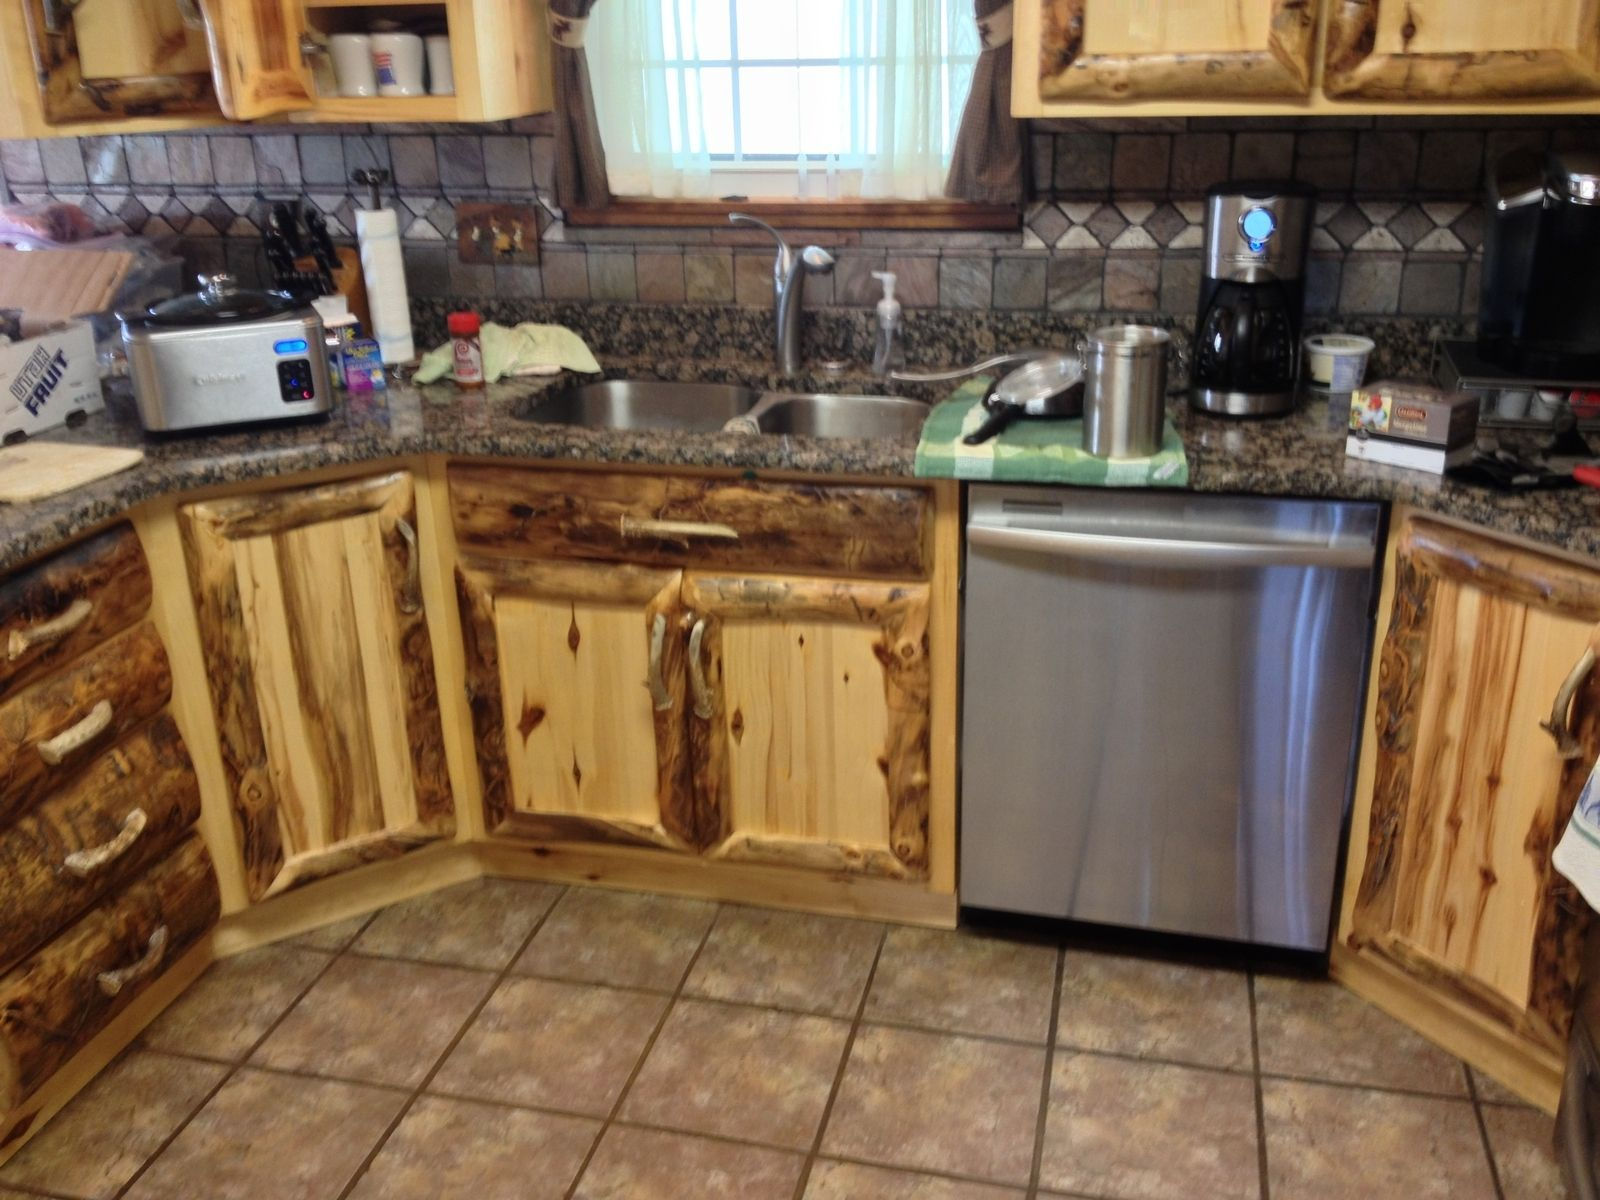 Rustic Aspen Log Kitchen Cabinets And Built In Wall Spice Rack